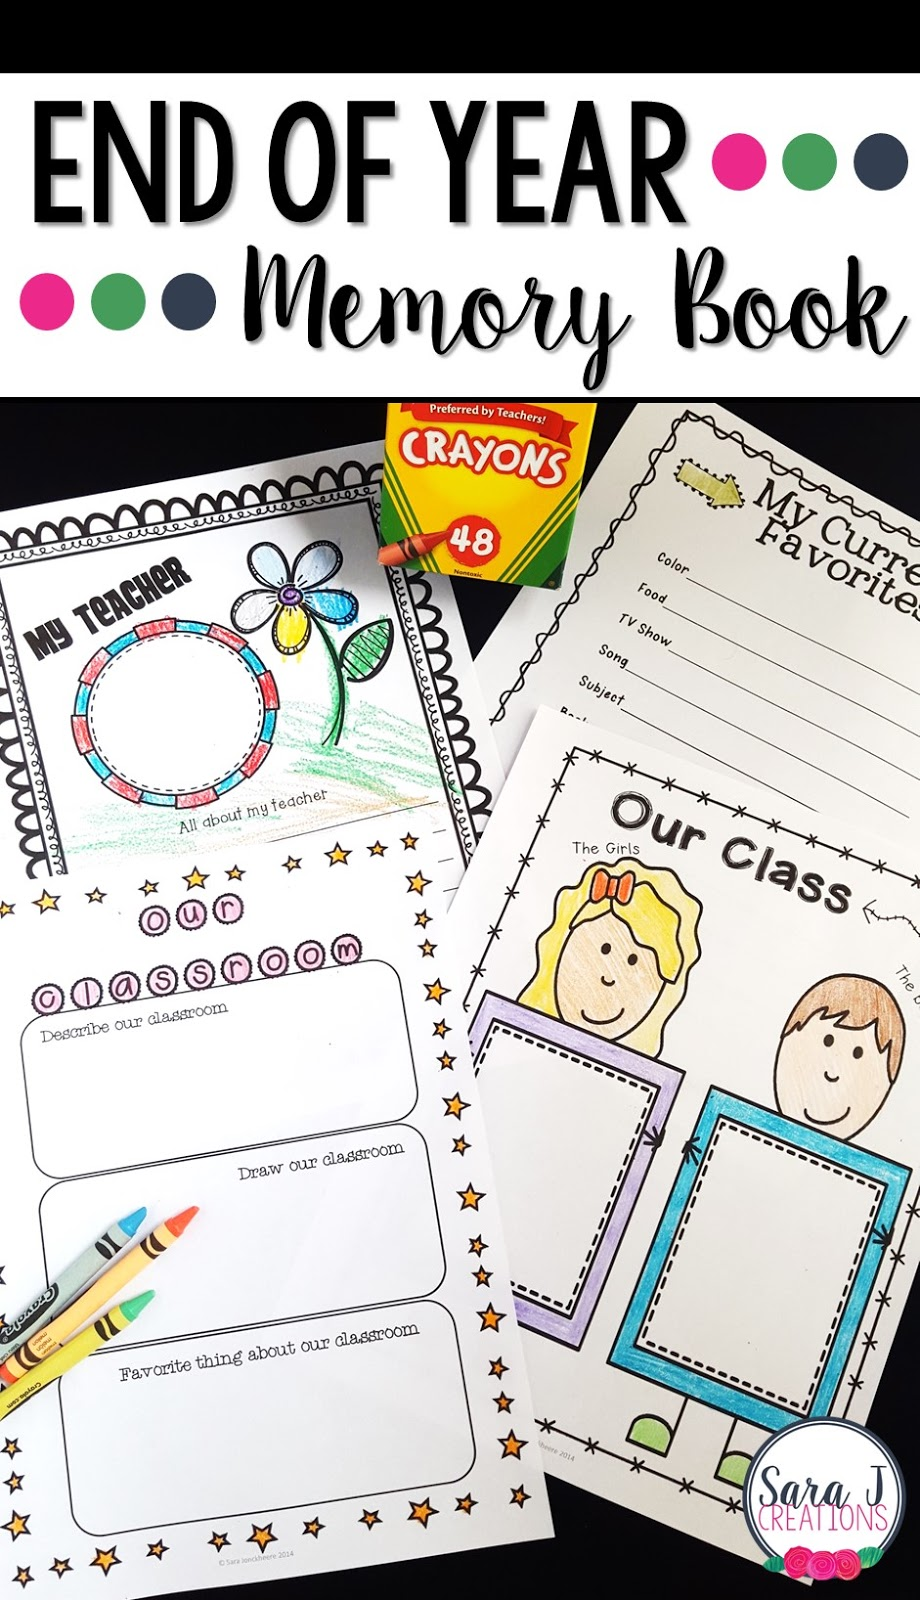 This end of the year memory book is the perfect activity to help countdown the end of the school year.